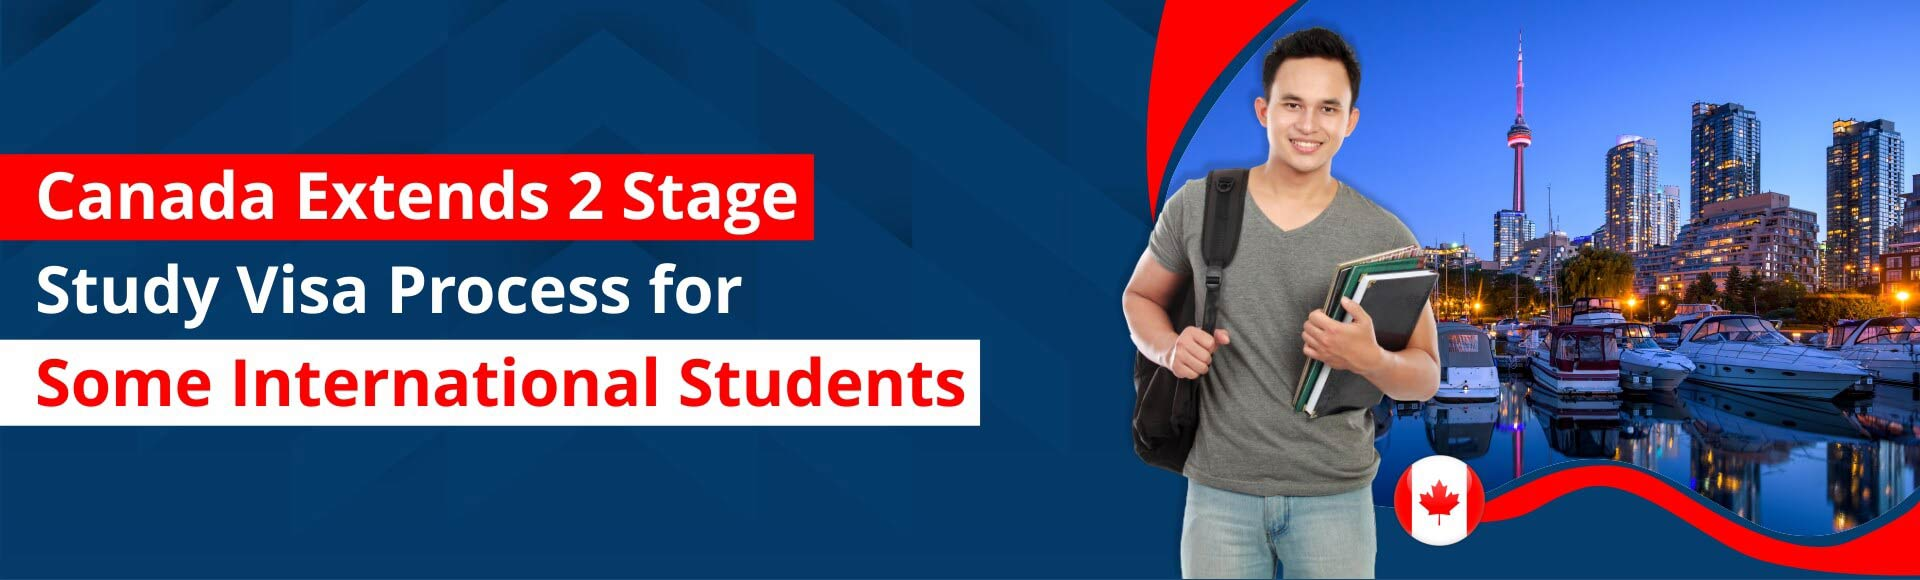 Canada extends 2 stage study visa process for some international students